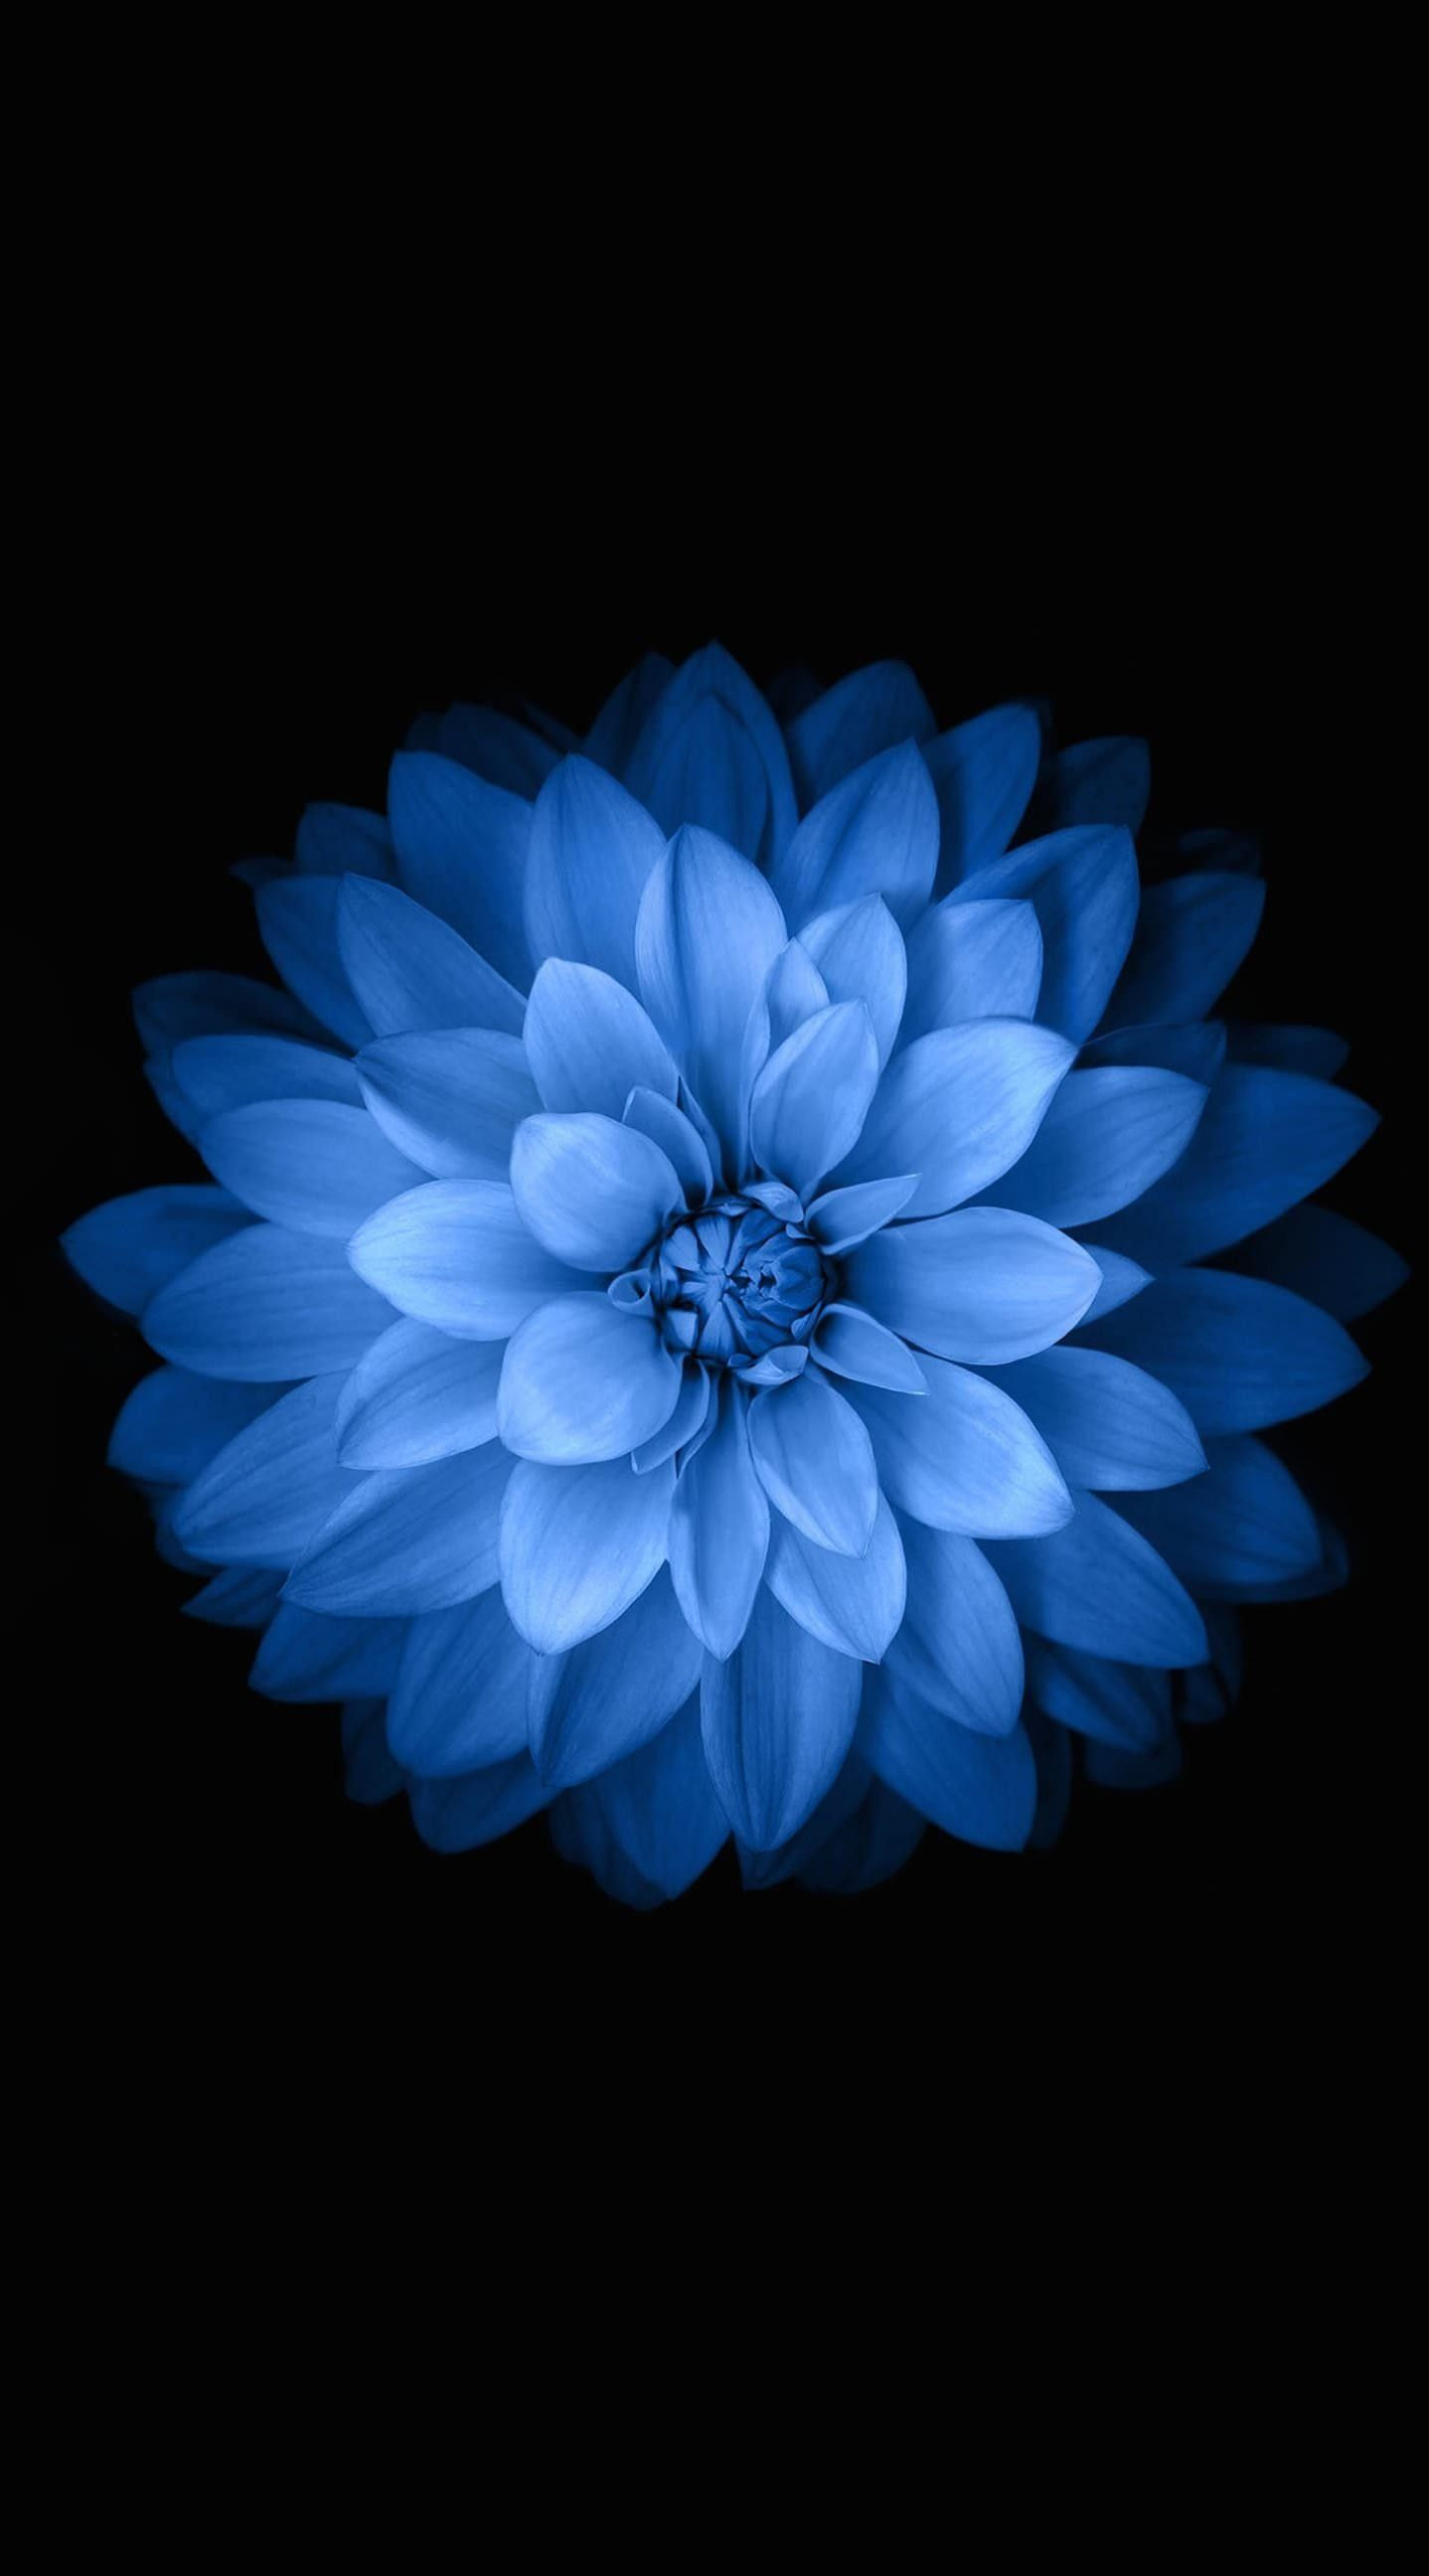 Blue Flowers Phone Wallpapers Top Free Blue Flowers Phone